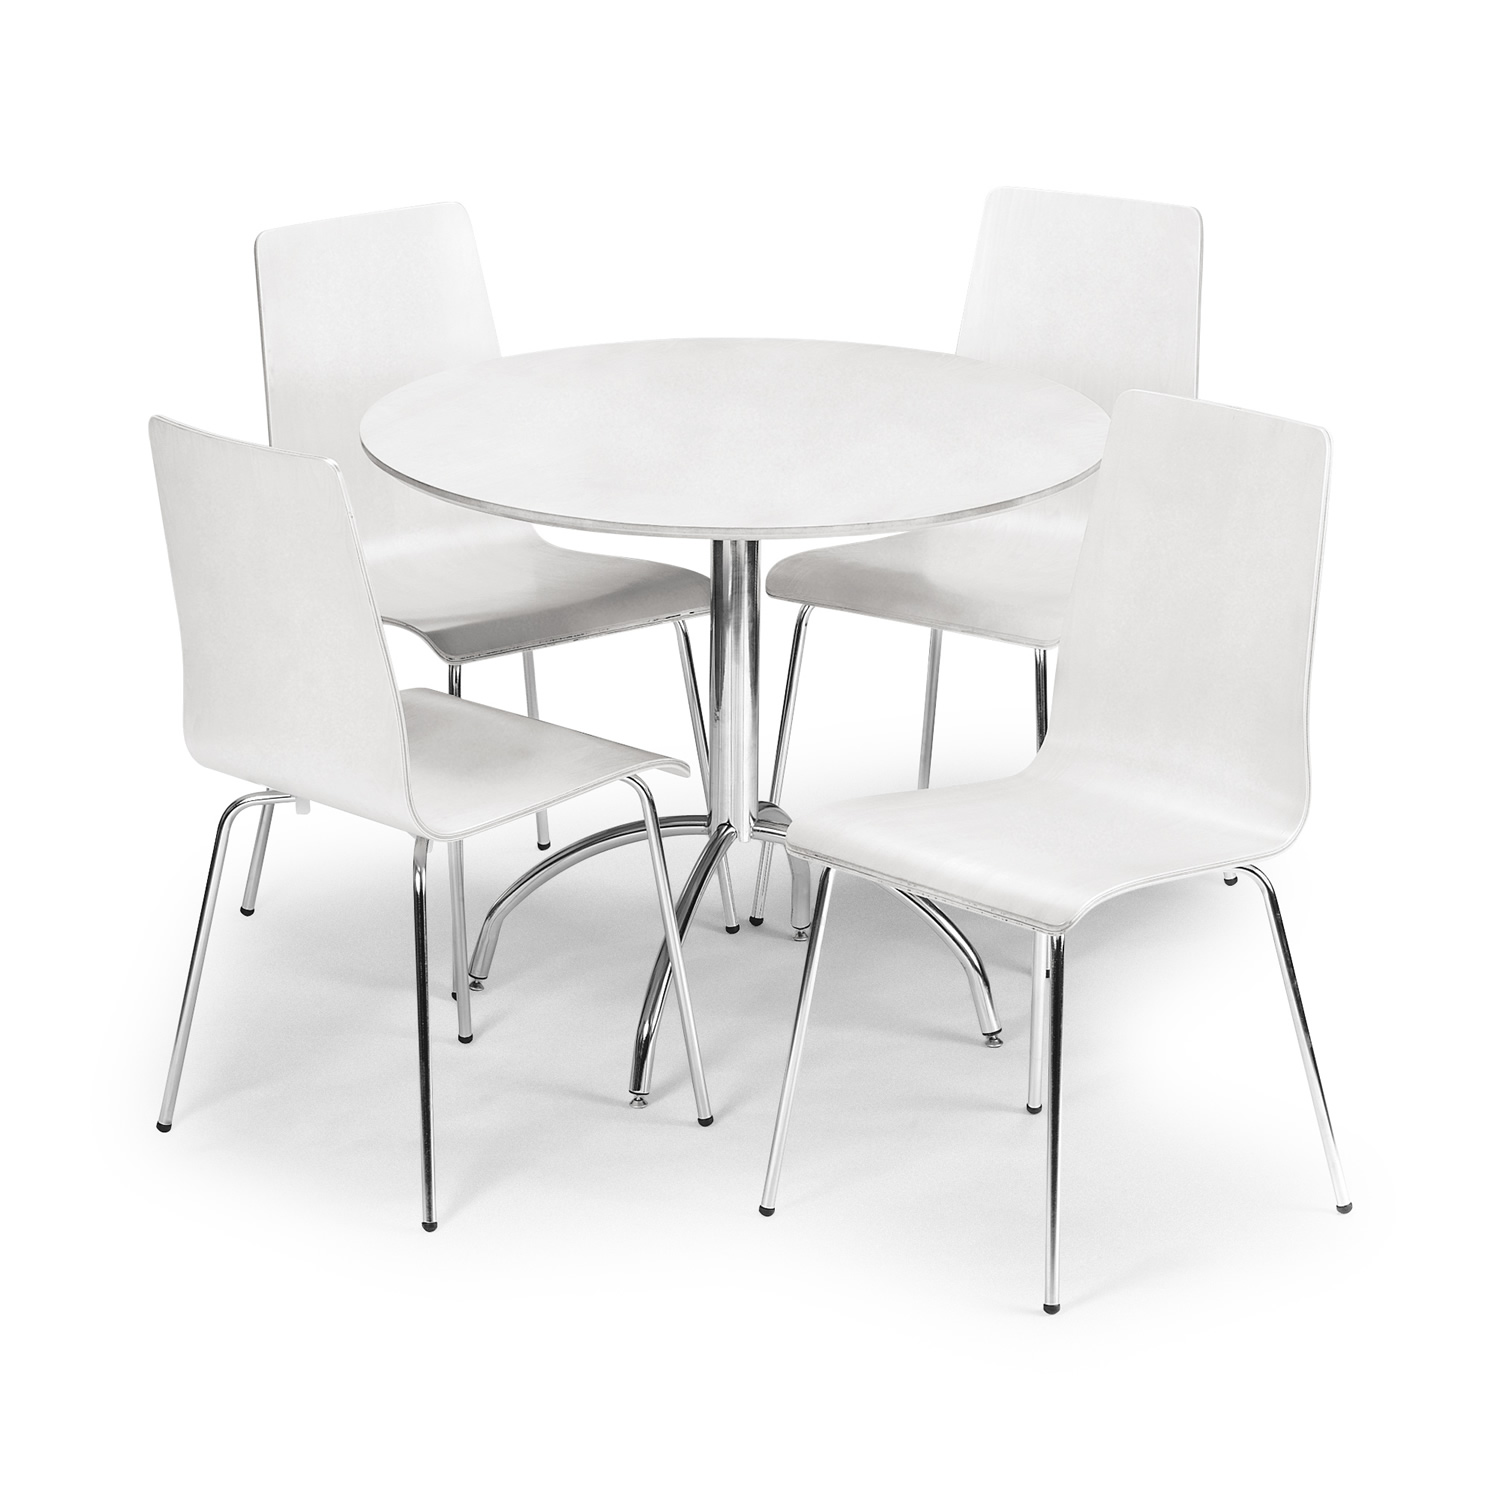 1500x1500 Mandy White 90cm Round Dining Table With 4 Chairs Next Day